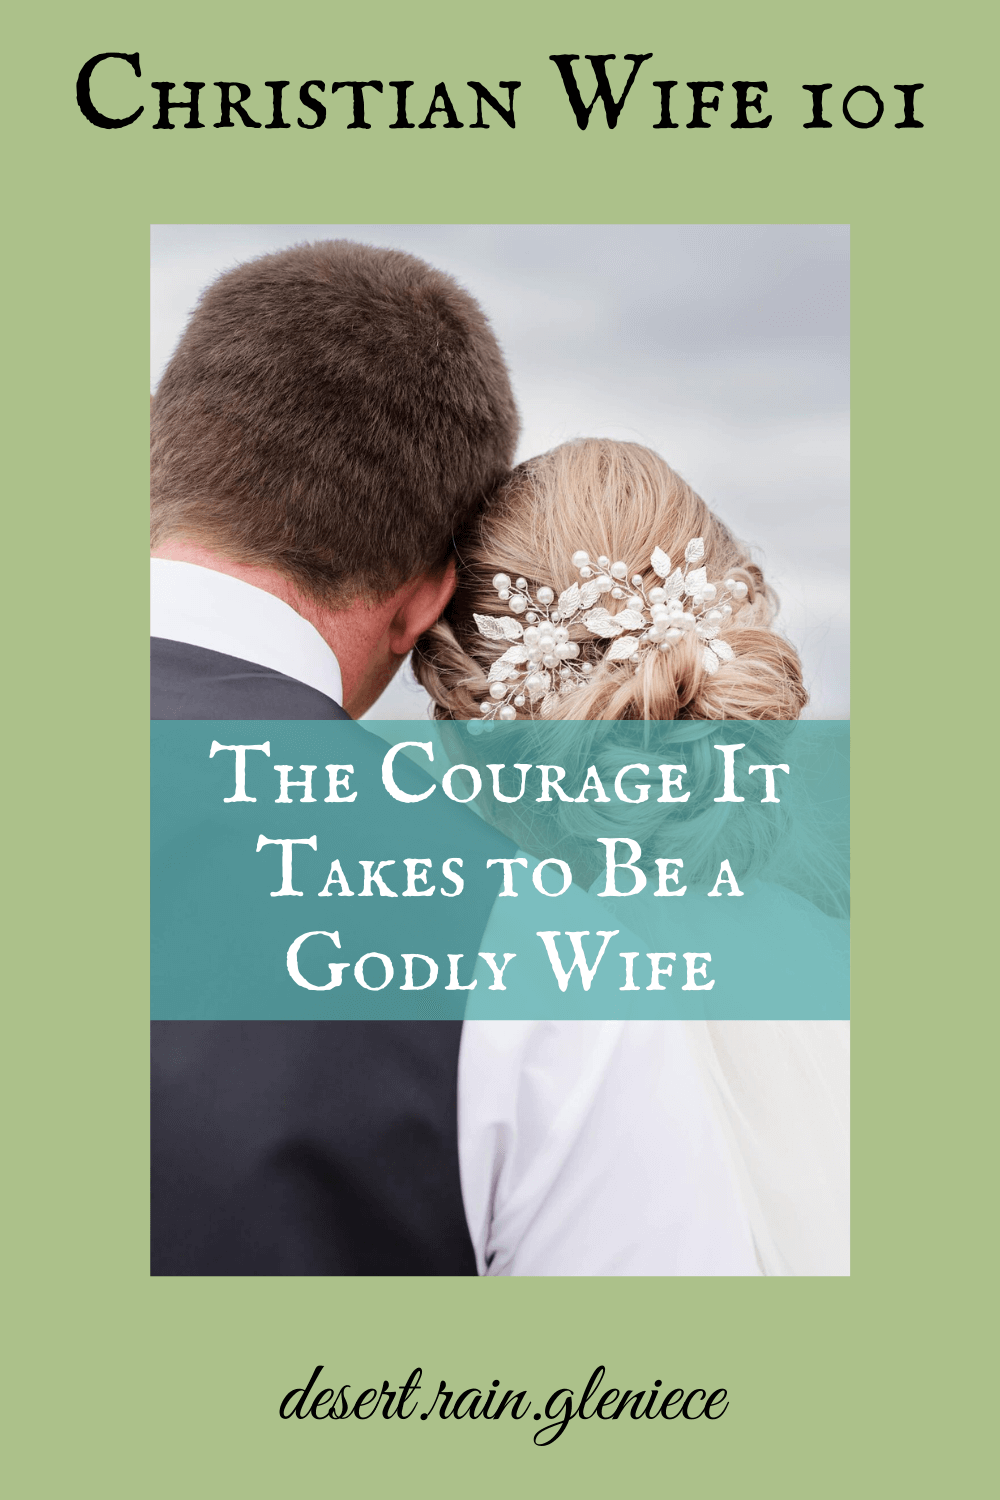 Godly submission is the hardest, bravest thing a wife can do. When she trusts God's plan without fear, marital peace will be her reward. #christianwife101, #godlymarriage, #submission, #maritalpeace